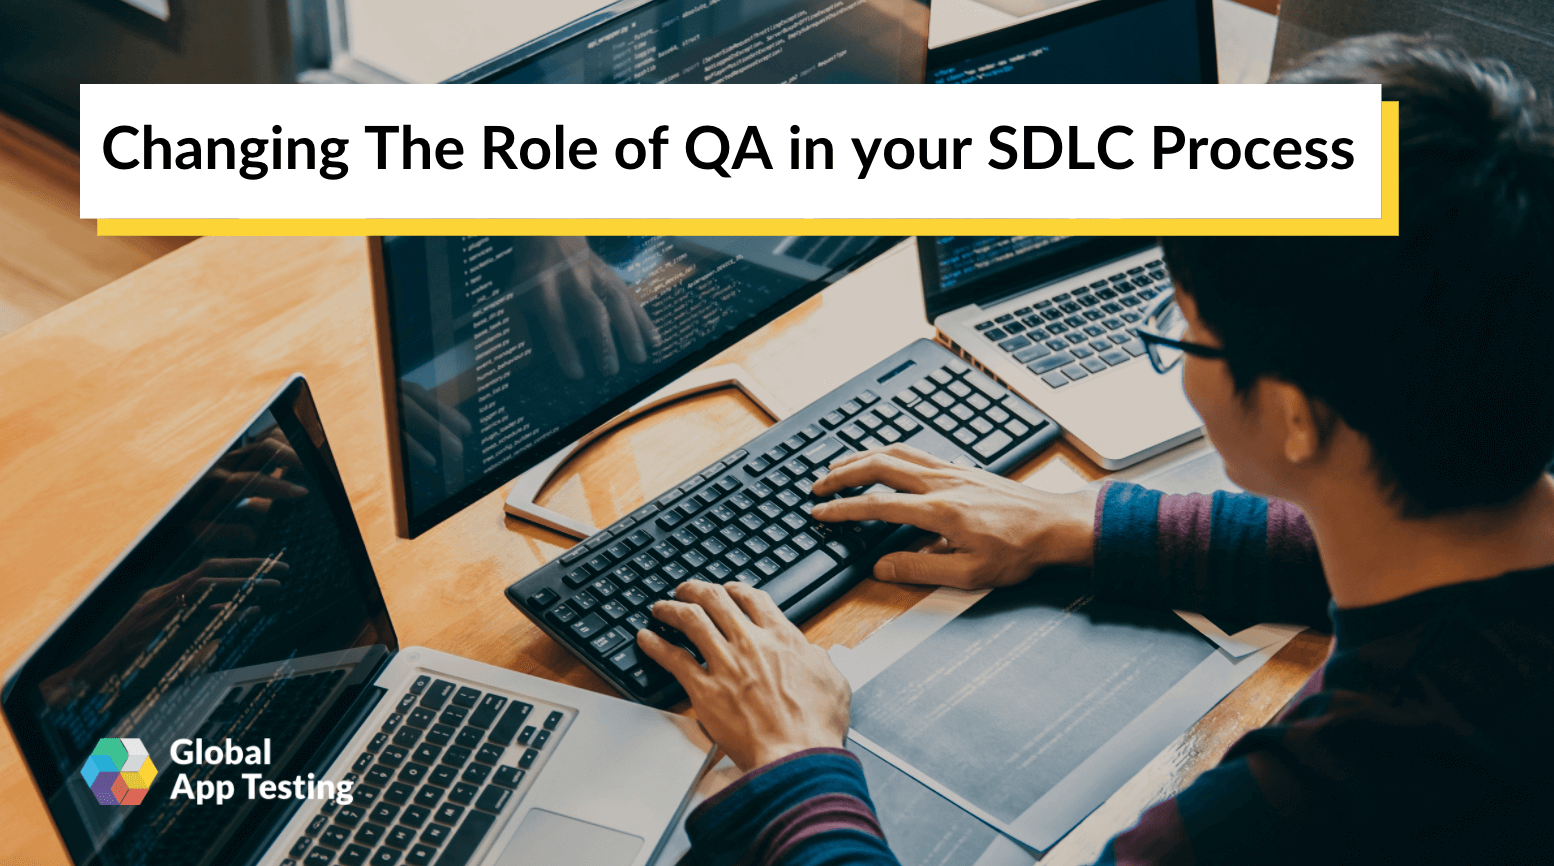 Changing The Role of QA in your SDLC Process